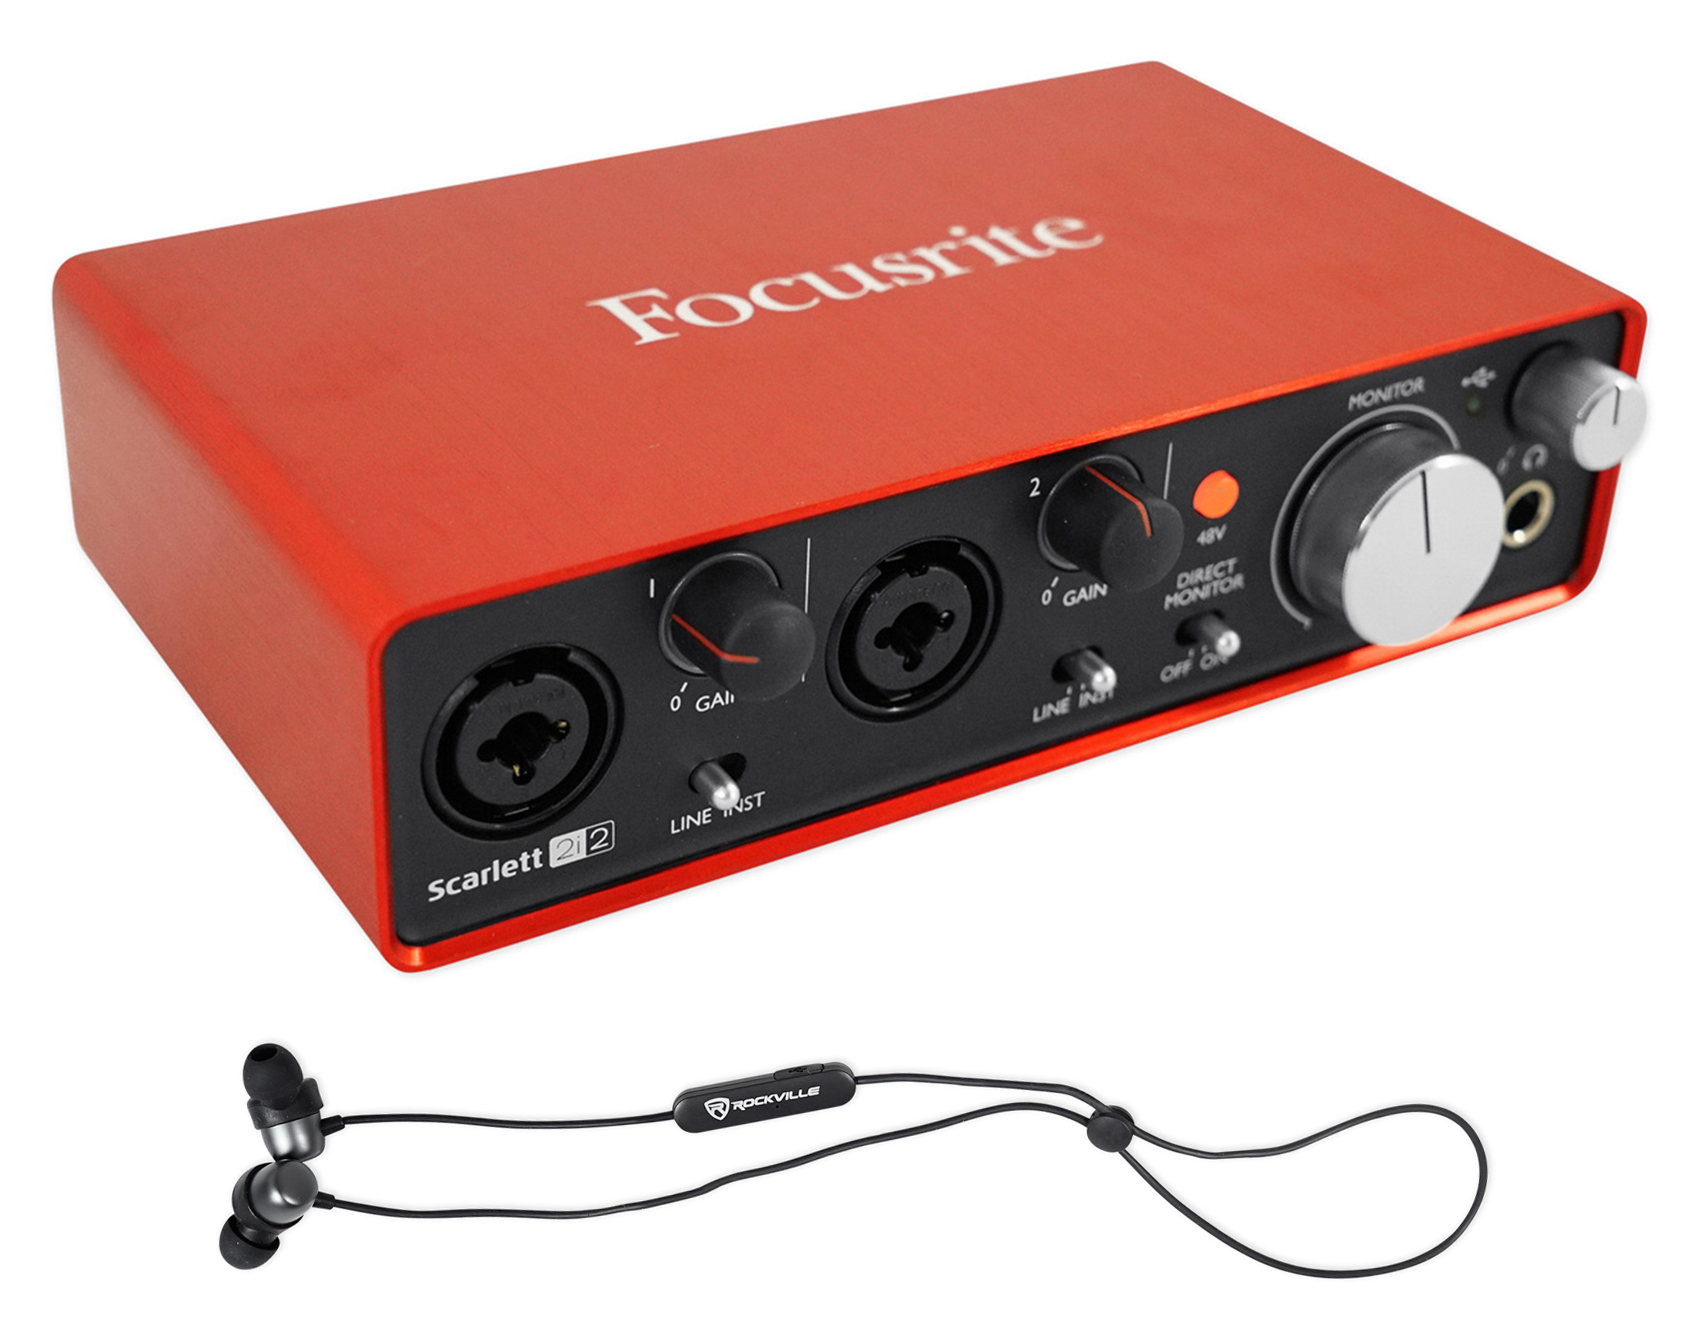 Scarlett 2i2 Details About Focusrite Scarlett 2i2 2nd Gen 192khz Usb 2 Audio Interface Earbuds